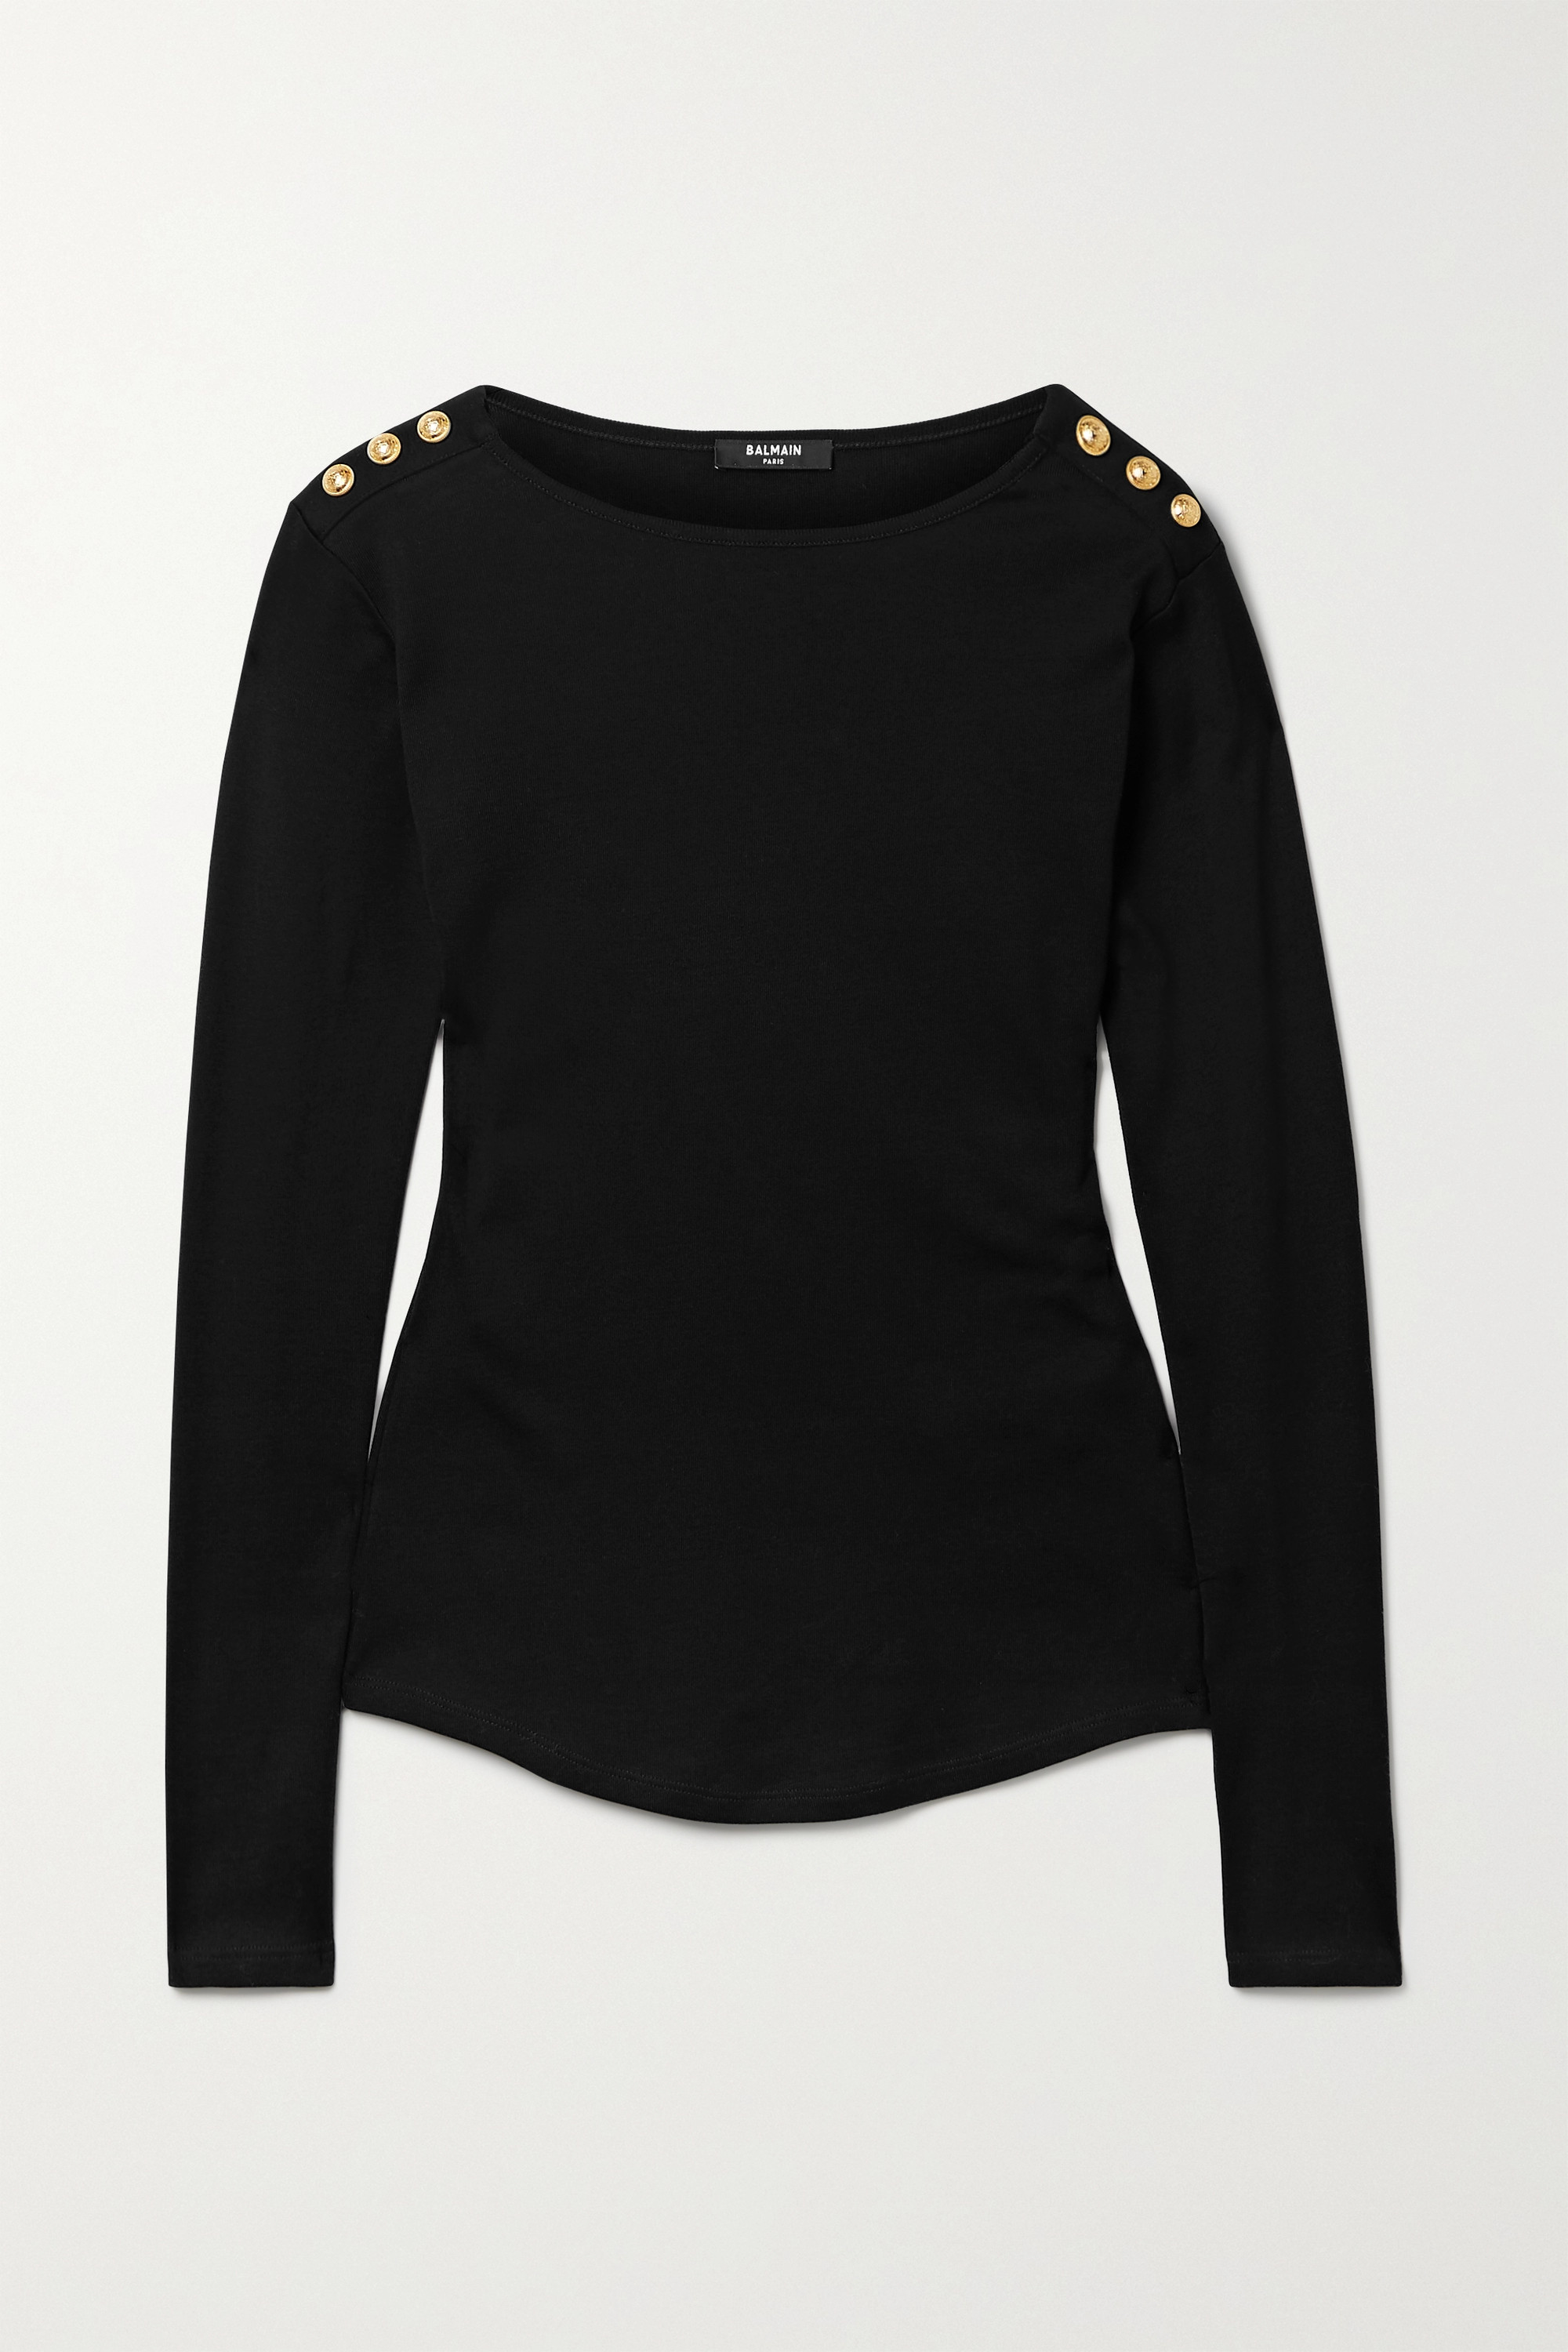 BALMAIN Button-embellished cotton-jersey top